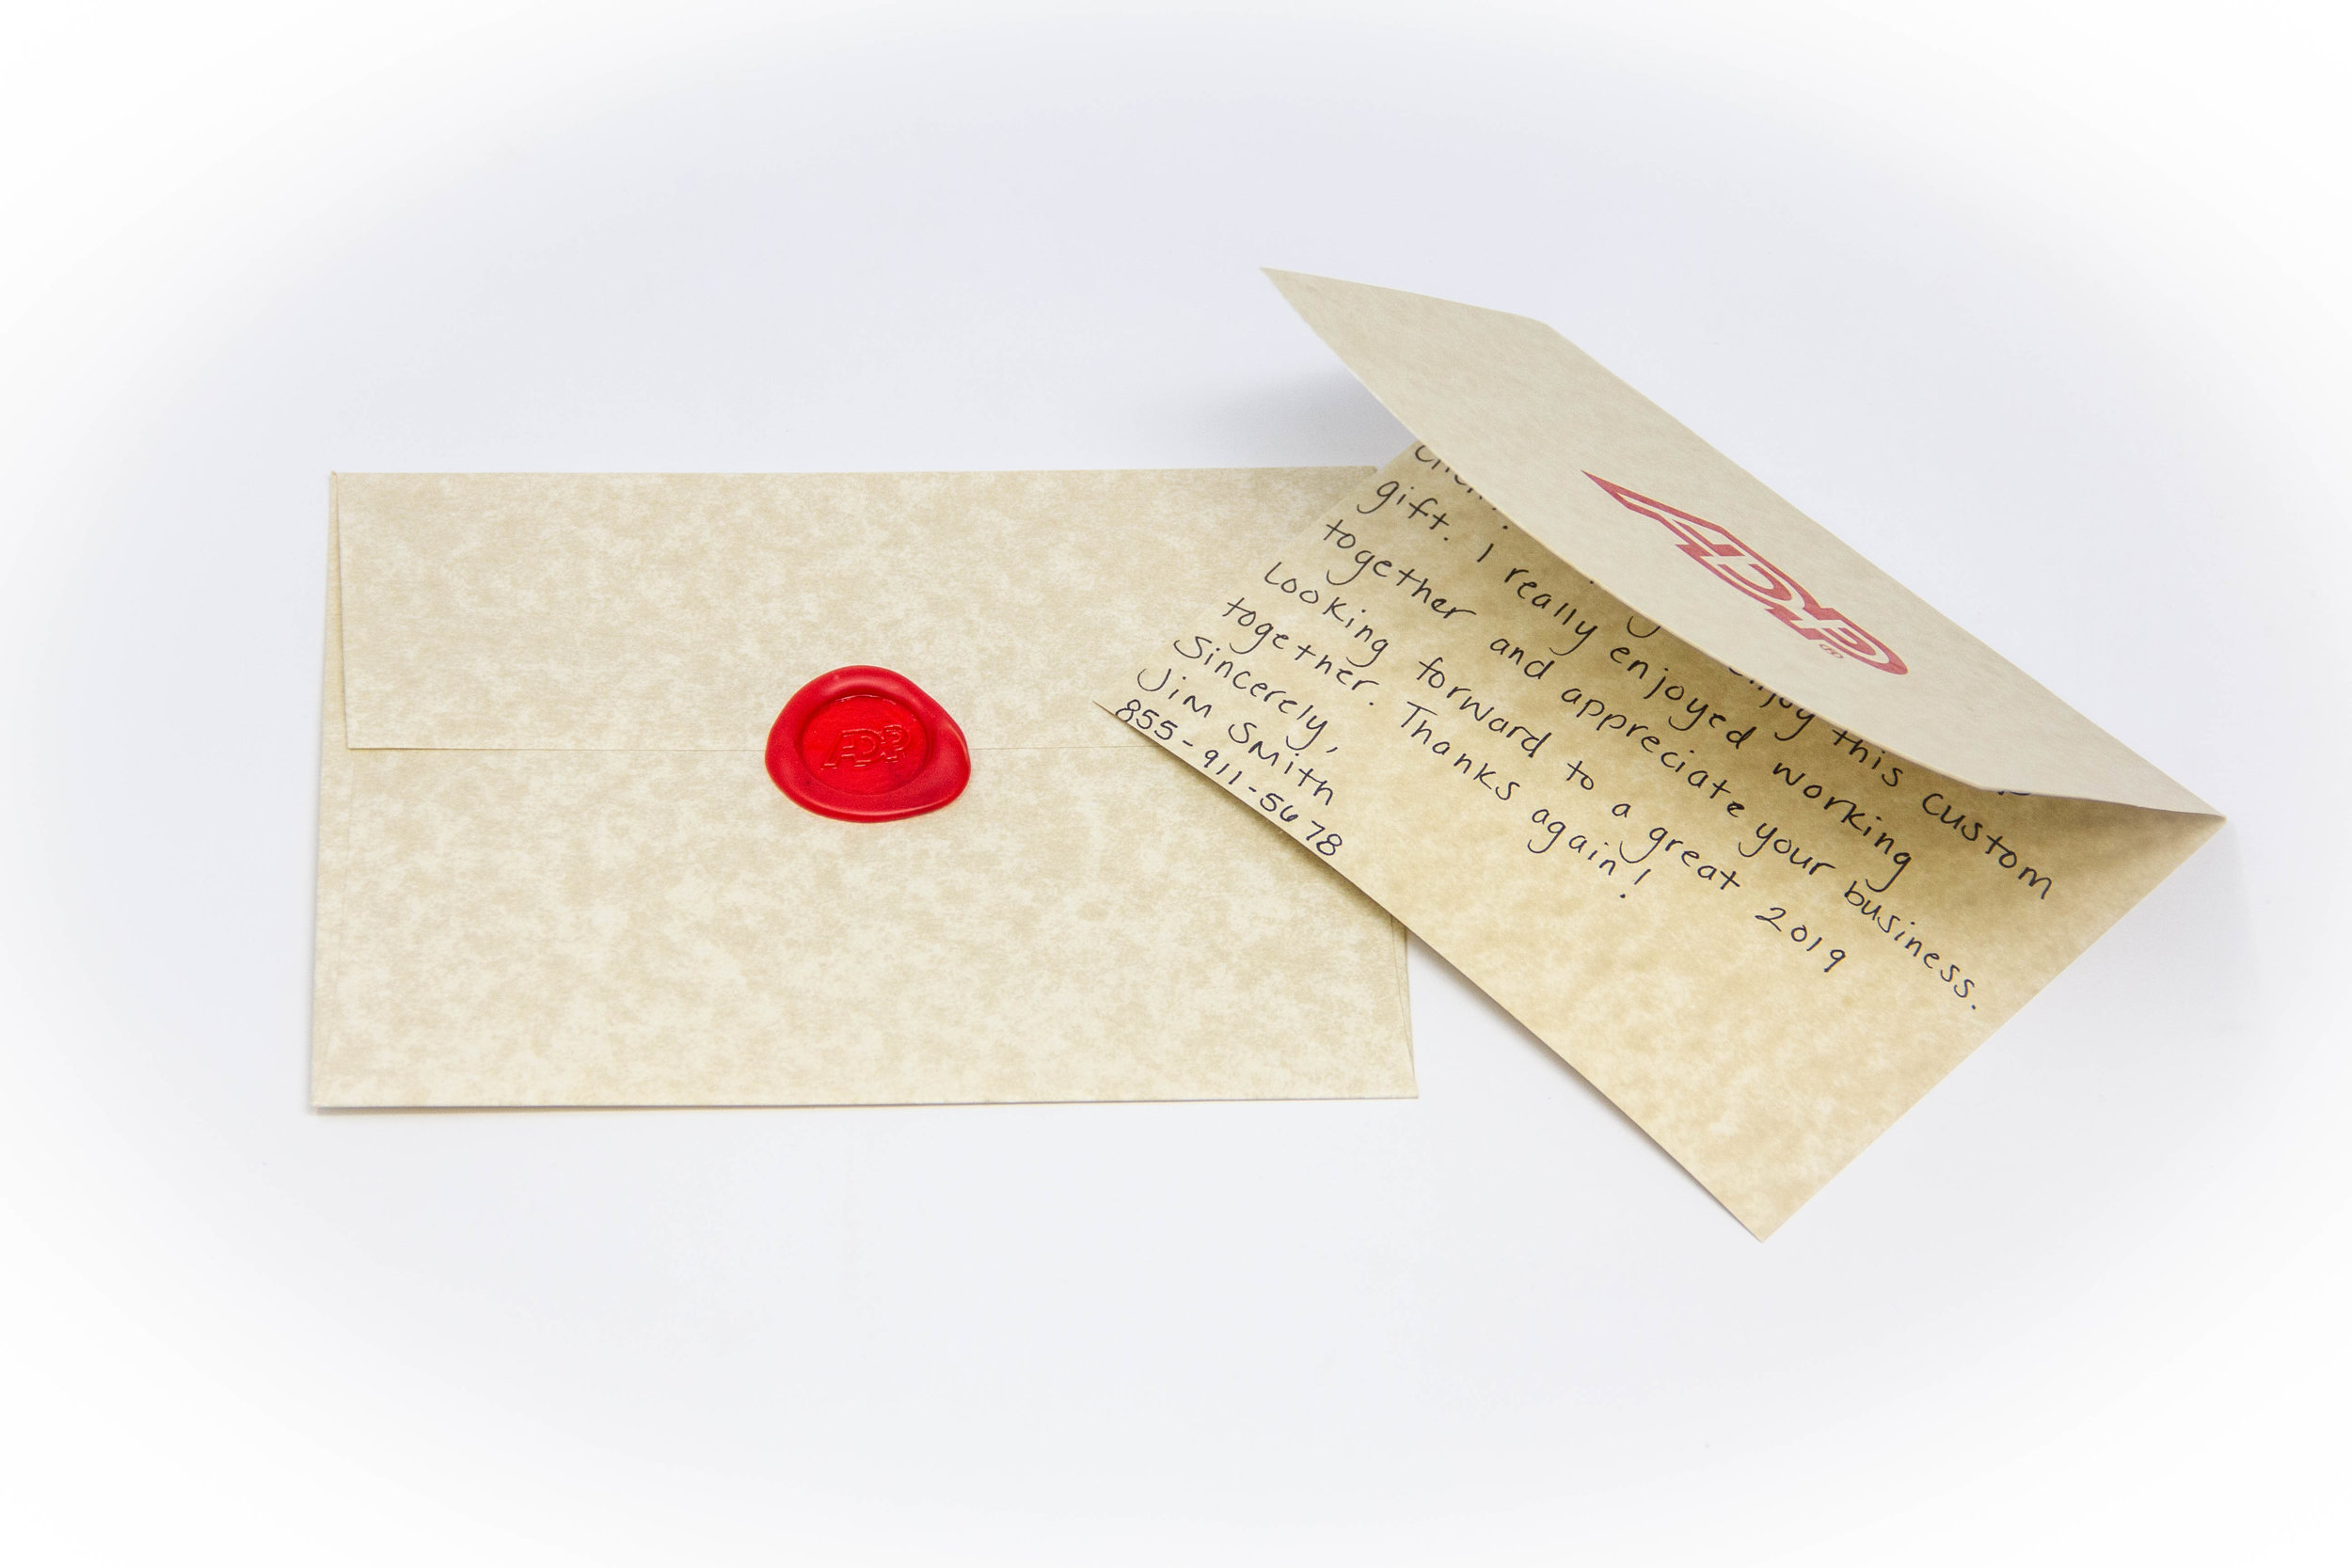 Wax-Sealed Hand-Written Letter